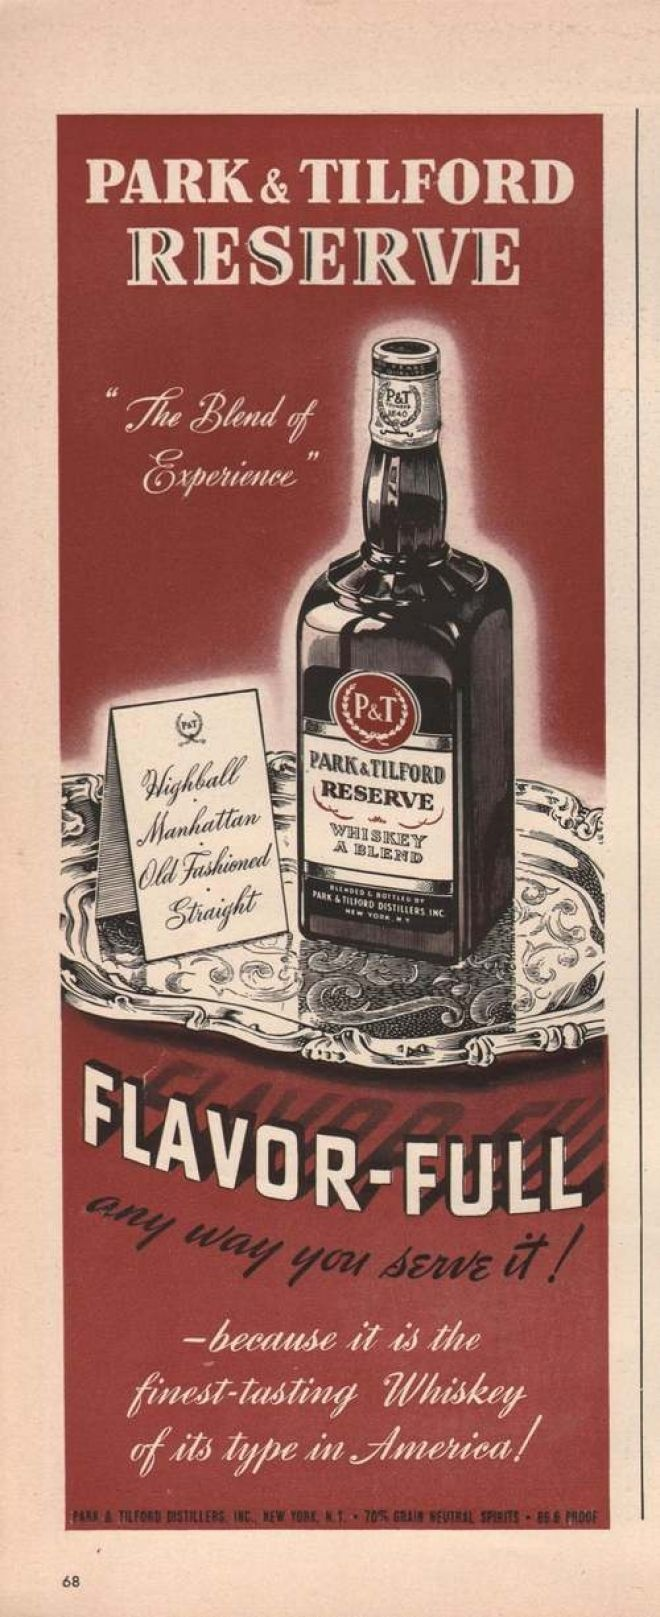 Vintage Drinks Advertisements of the 1940s (Page 39)